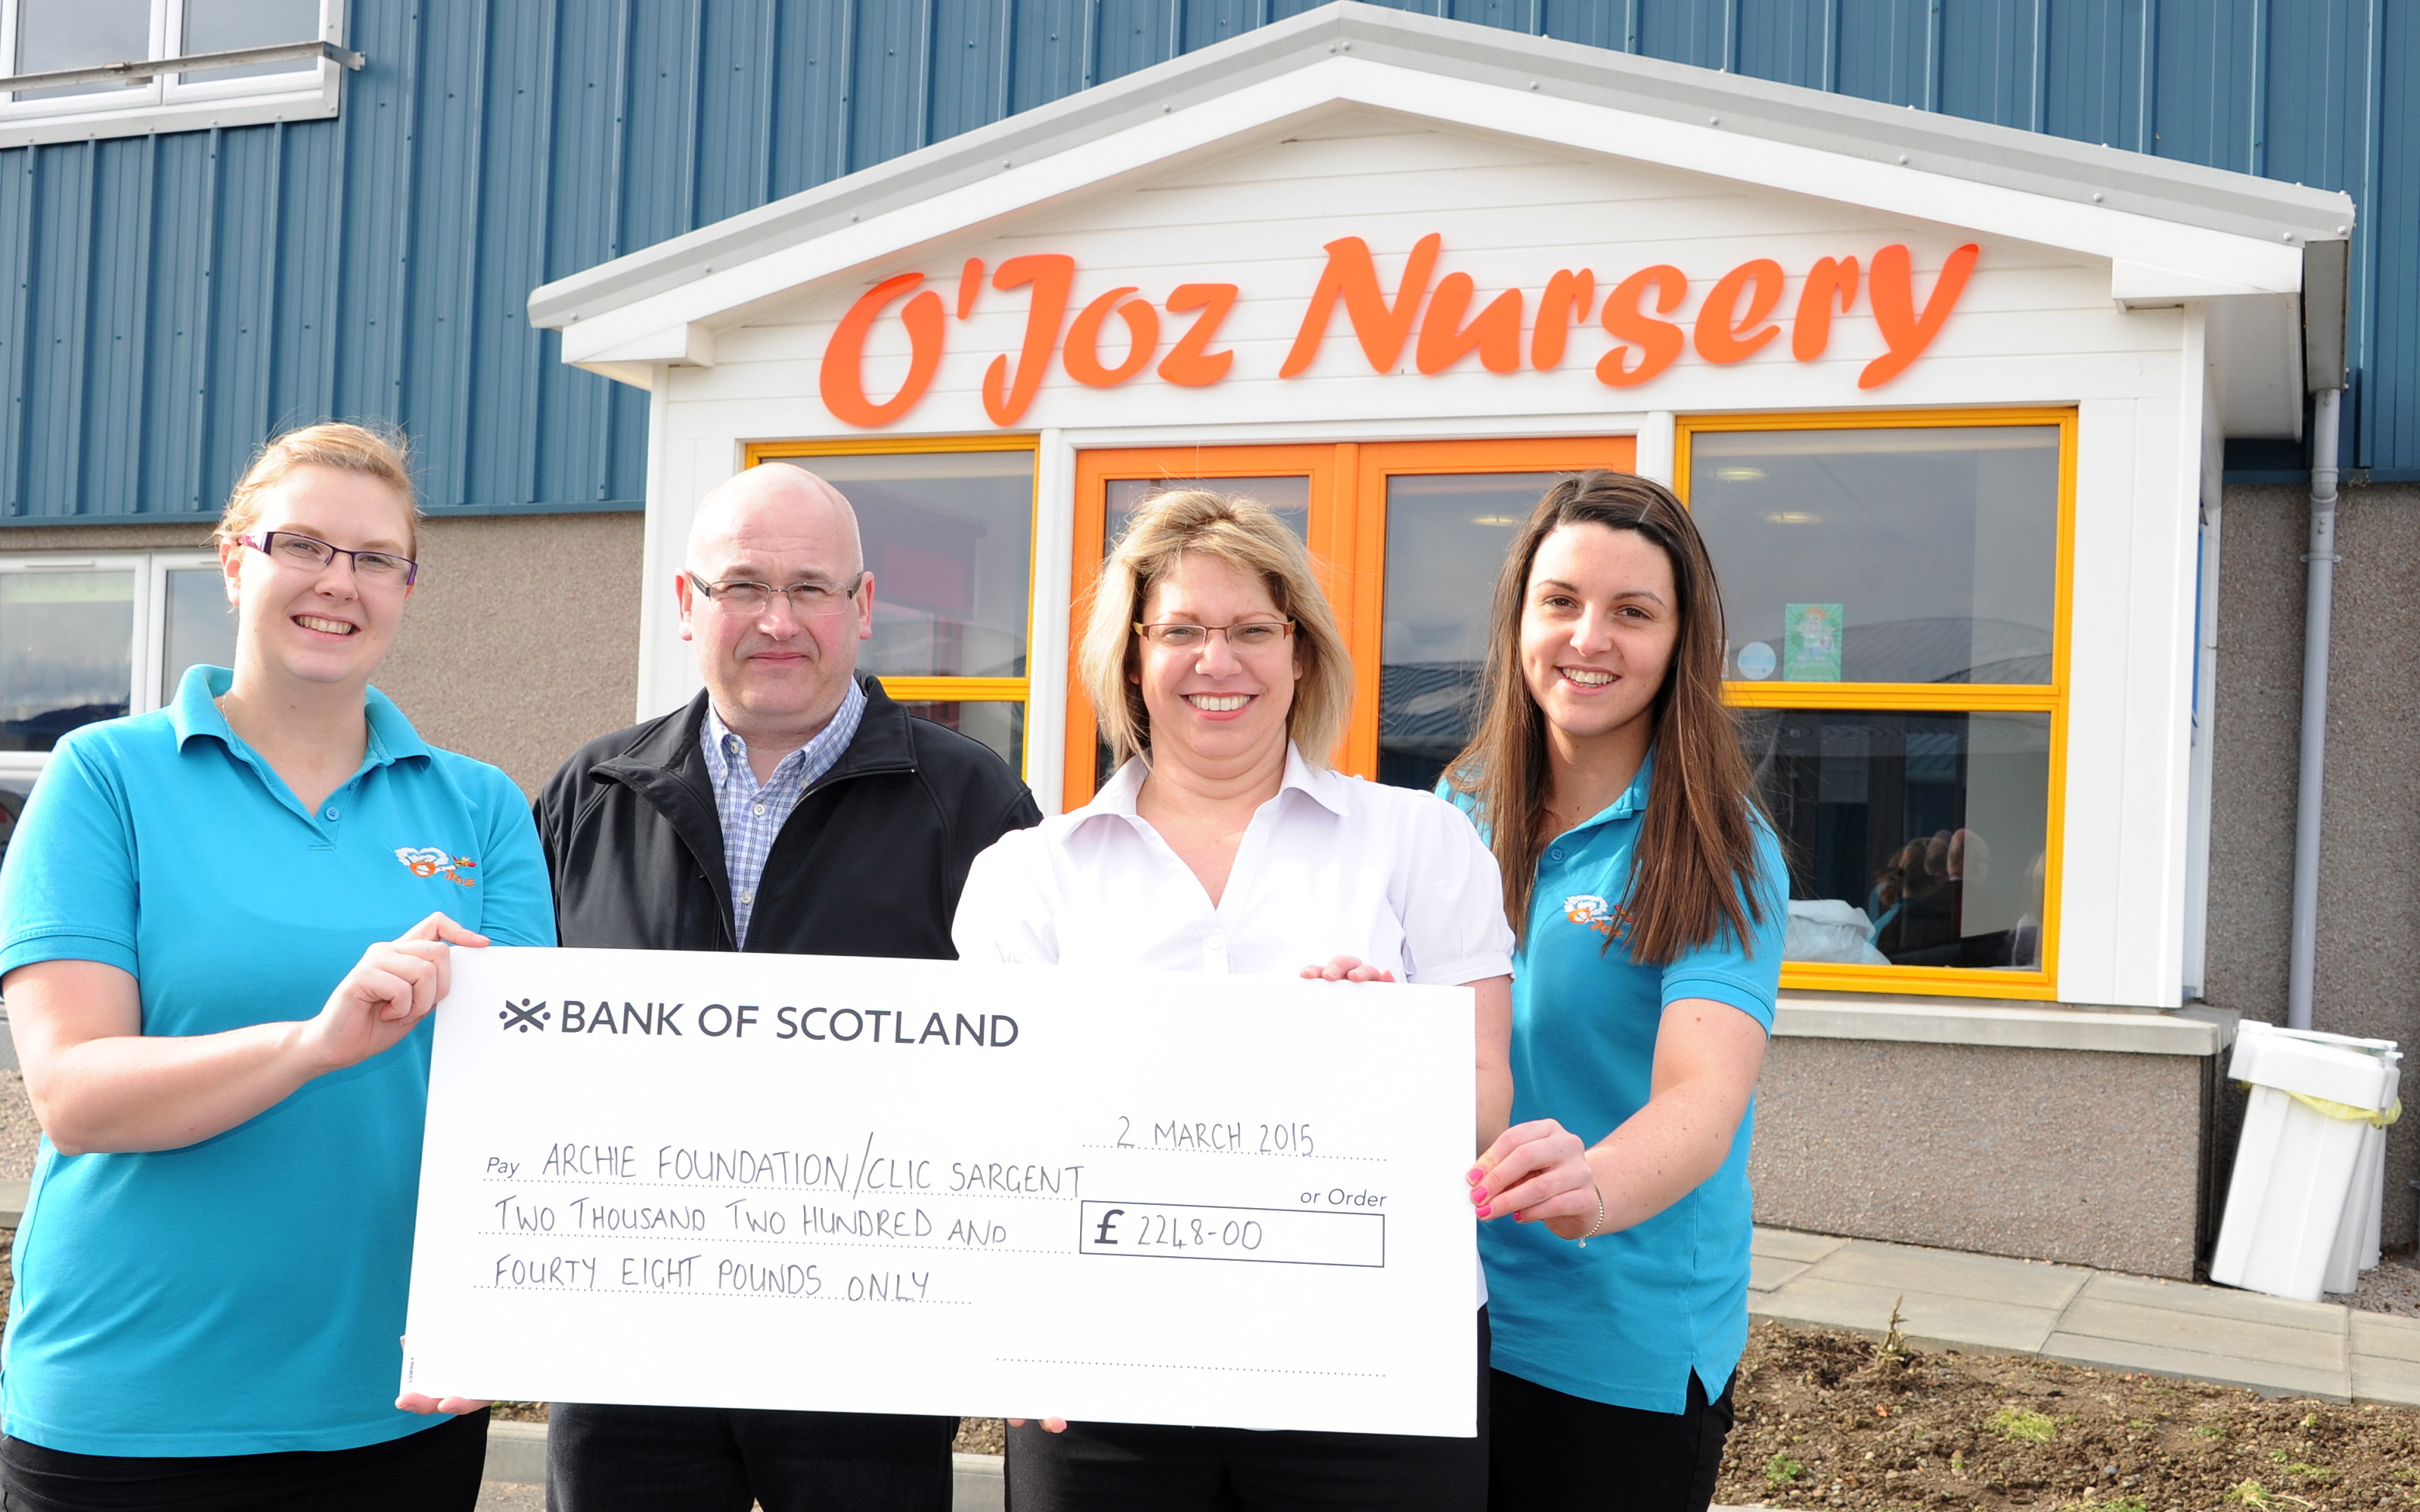 O'Joz nursery and Fabritech have raised more than £2,200 for two charities